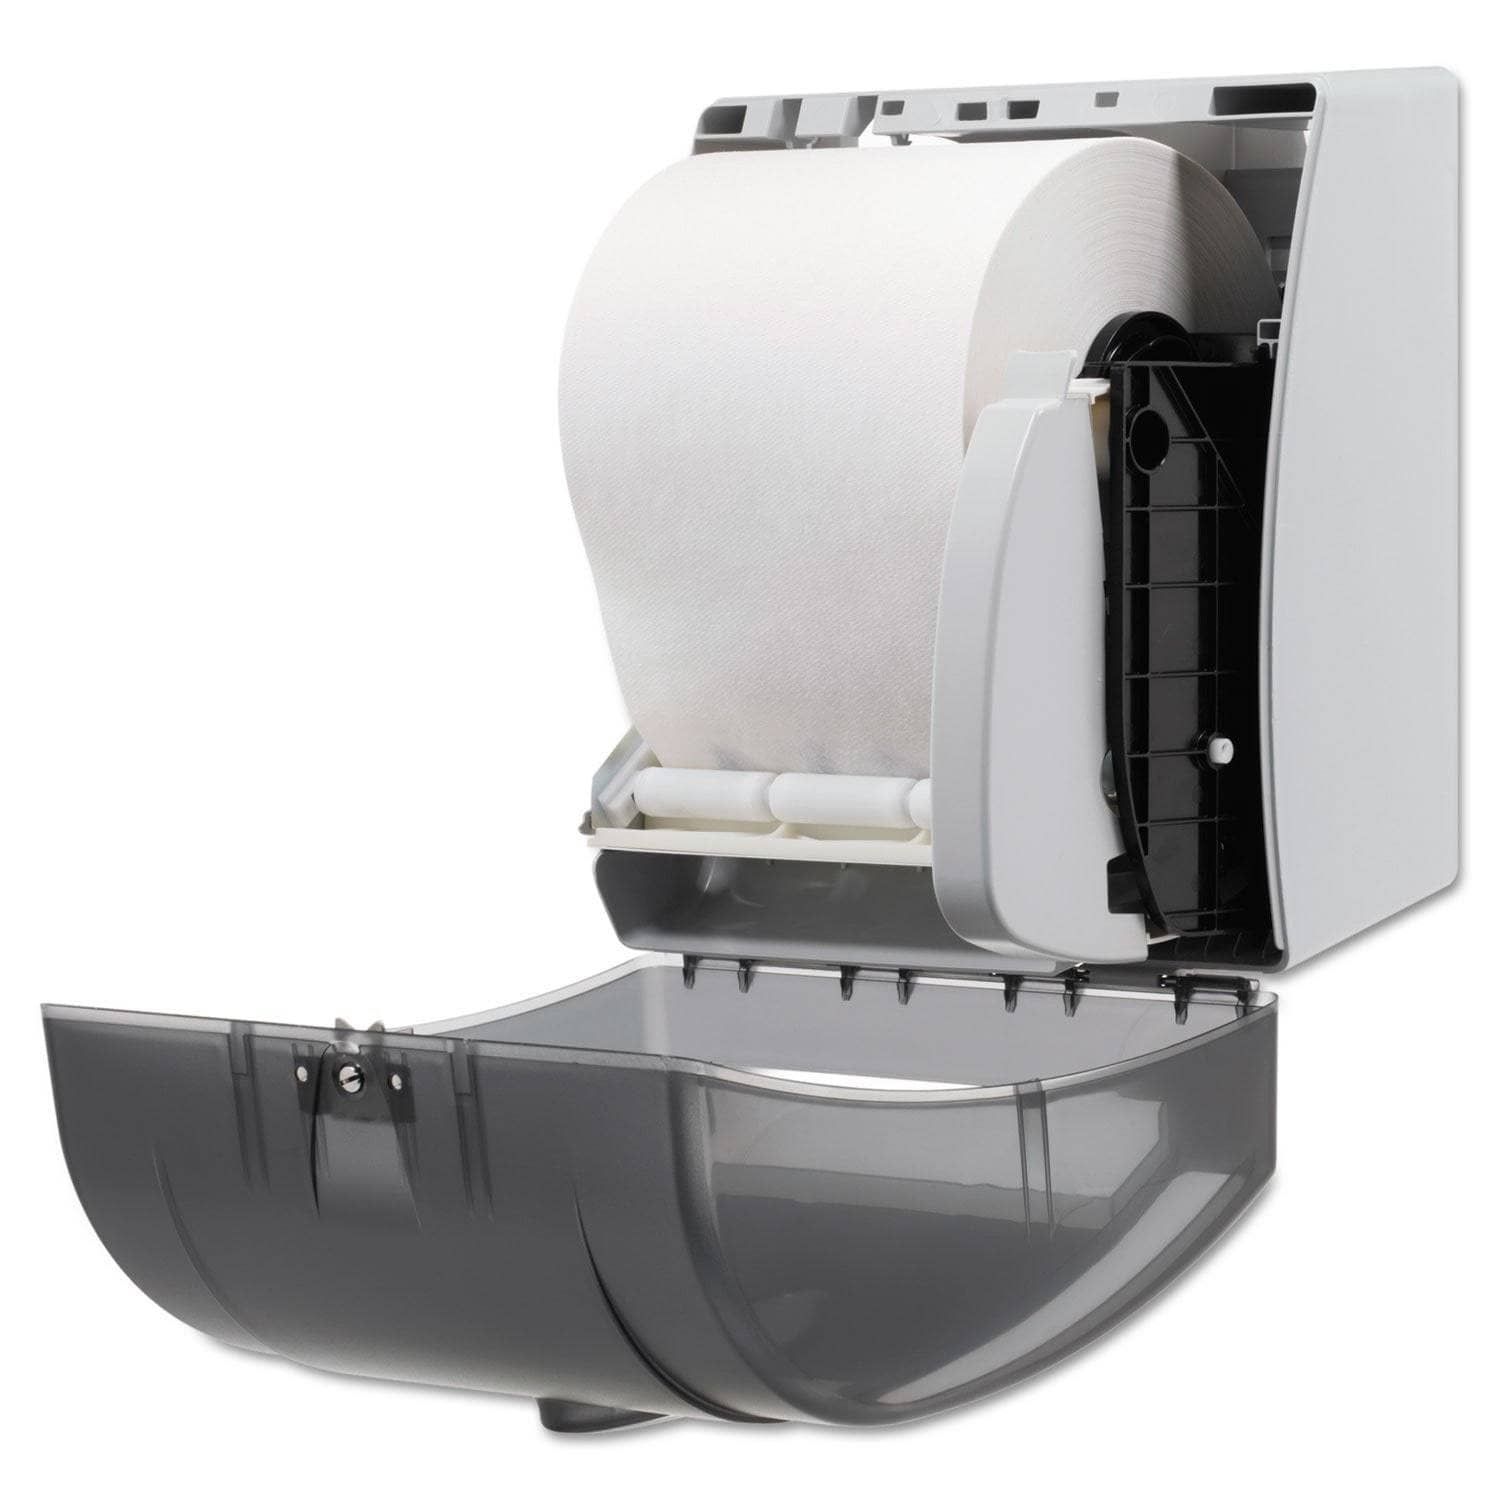 Georgia Pacific Hygienic Push-Paddle Roll Towel Dispenser, Translucent Smoke - GPC54338 - TotalRestroom.com